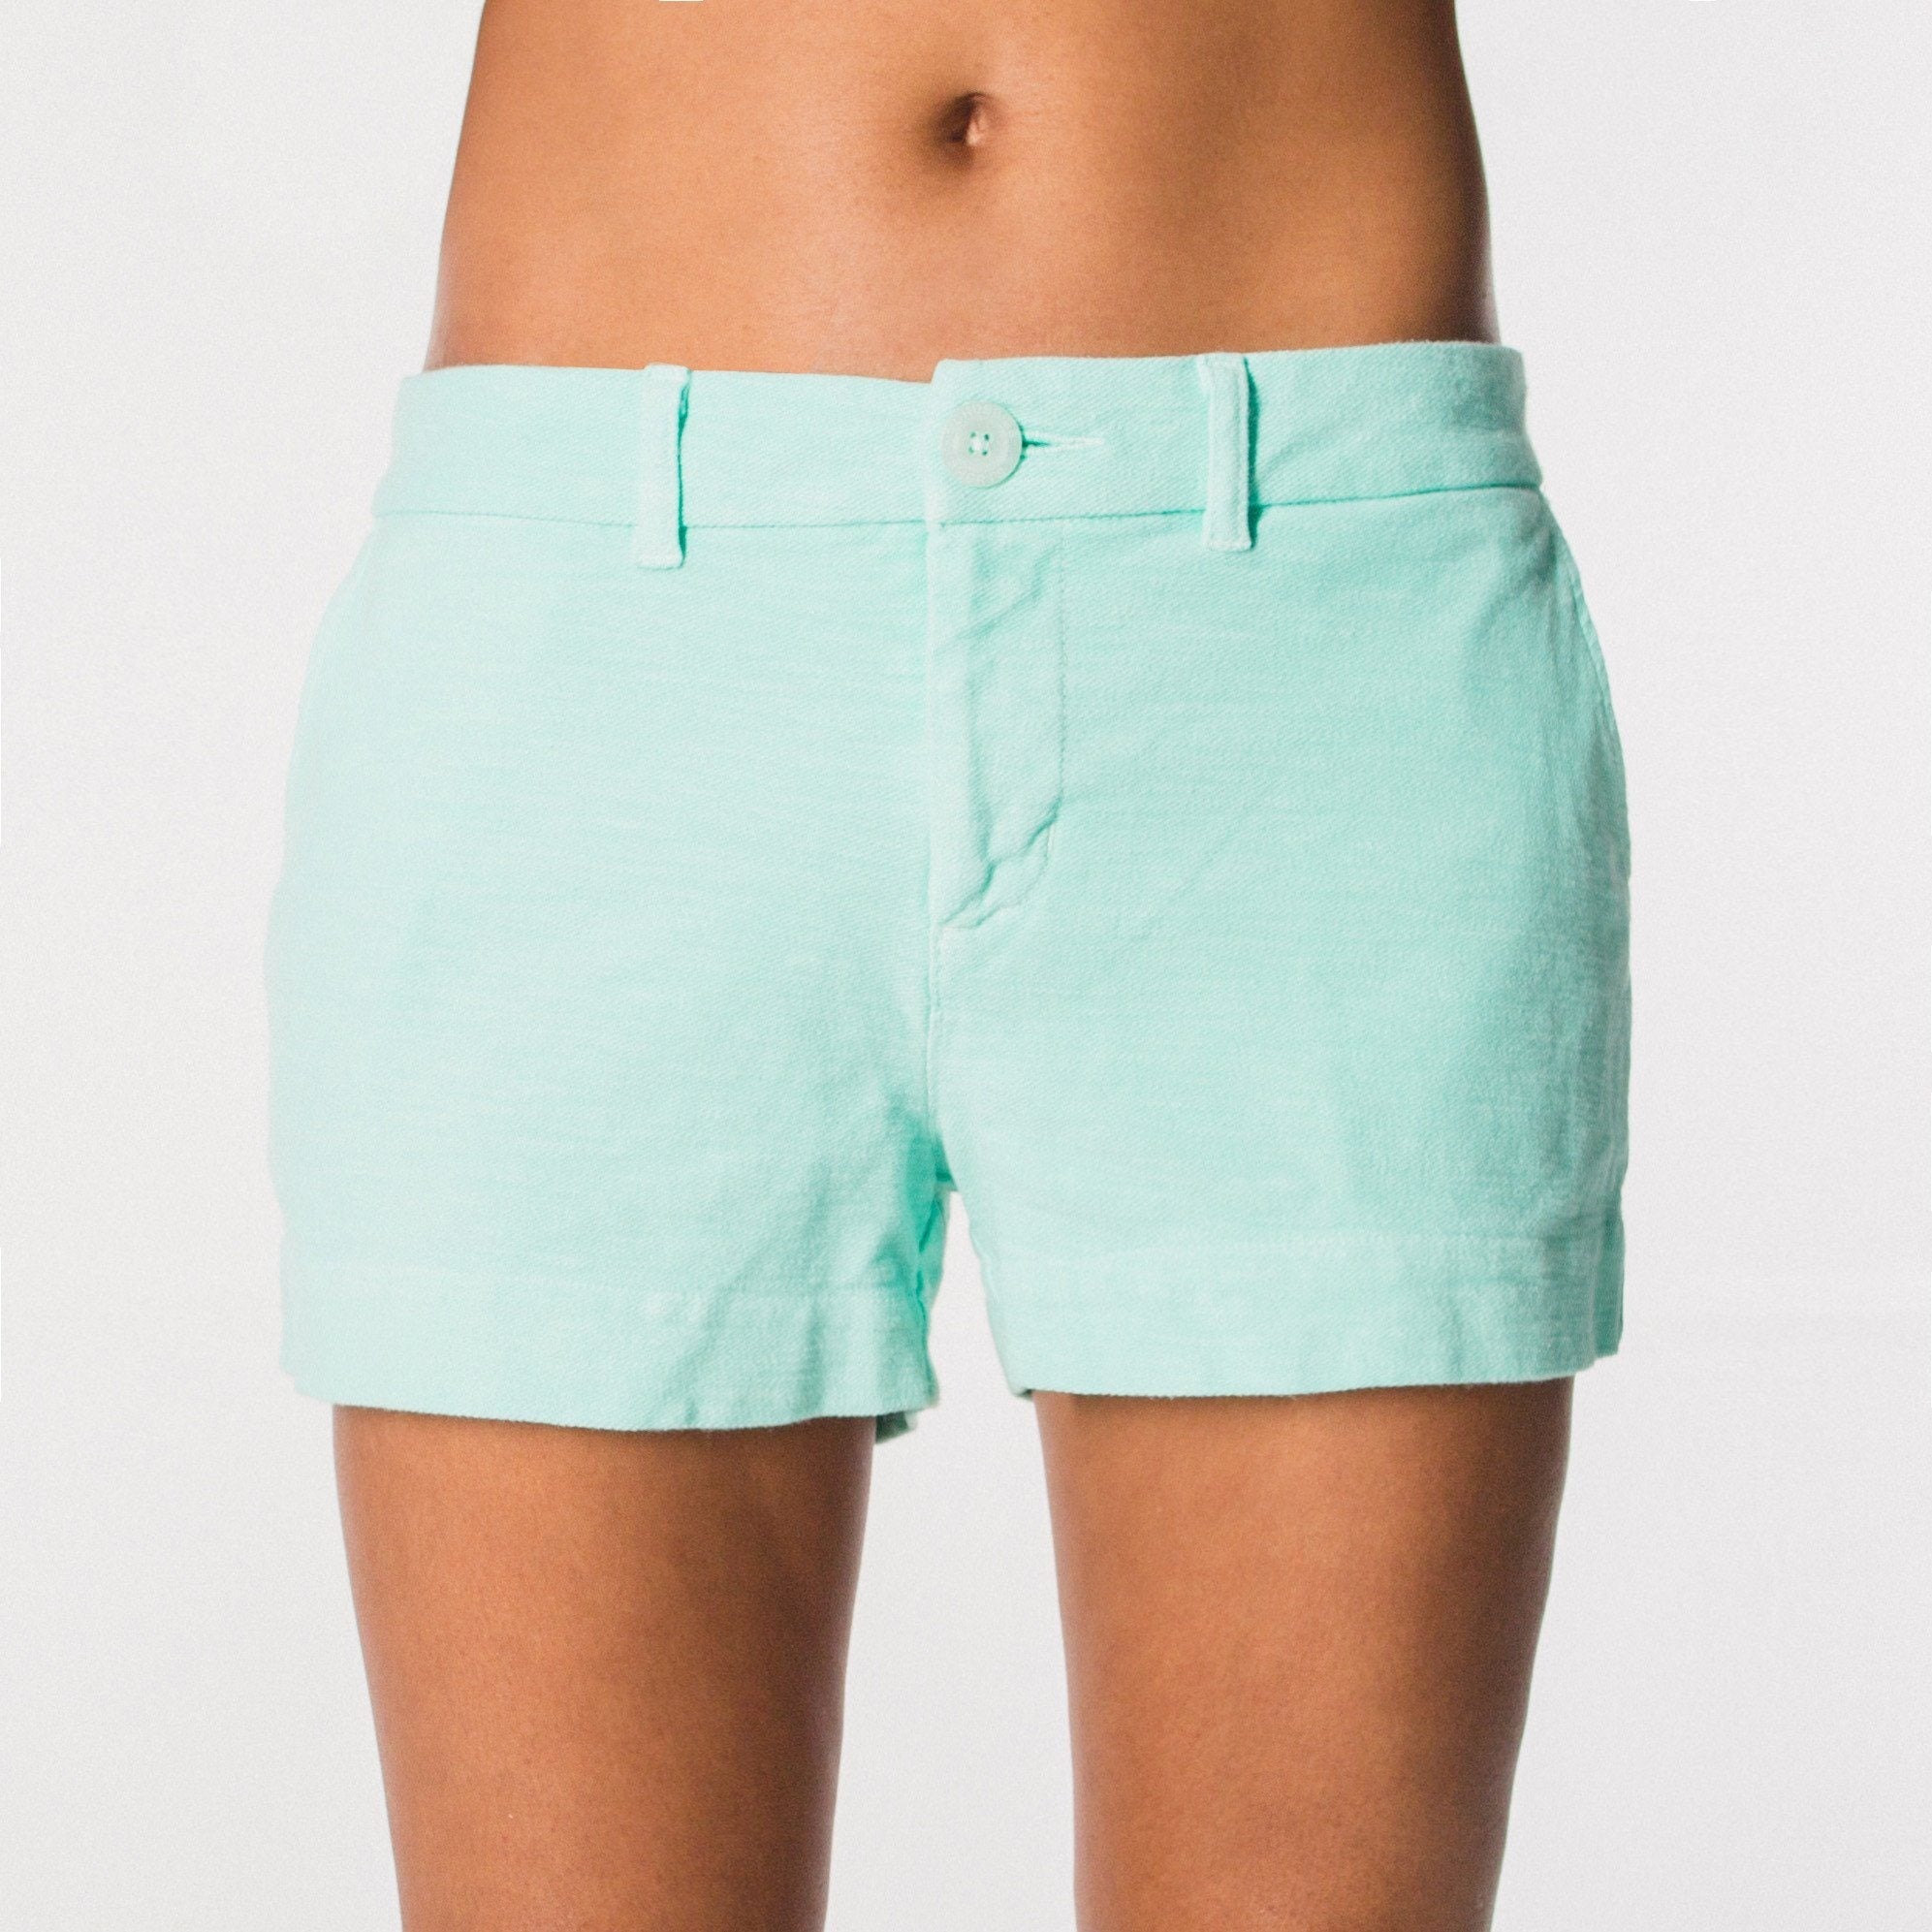 Ladies shorts M /& S no label size 6  8  10 only